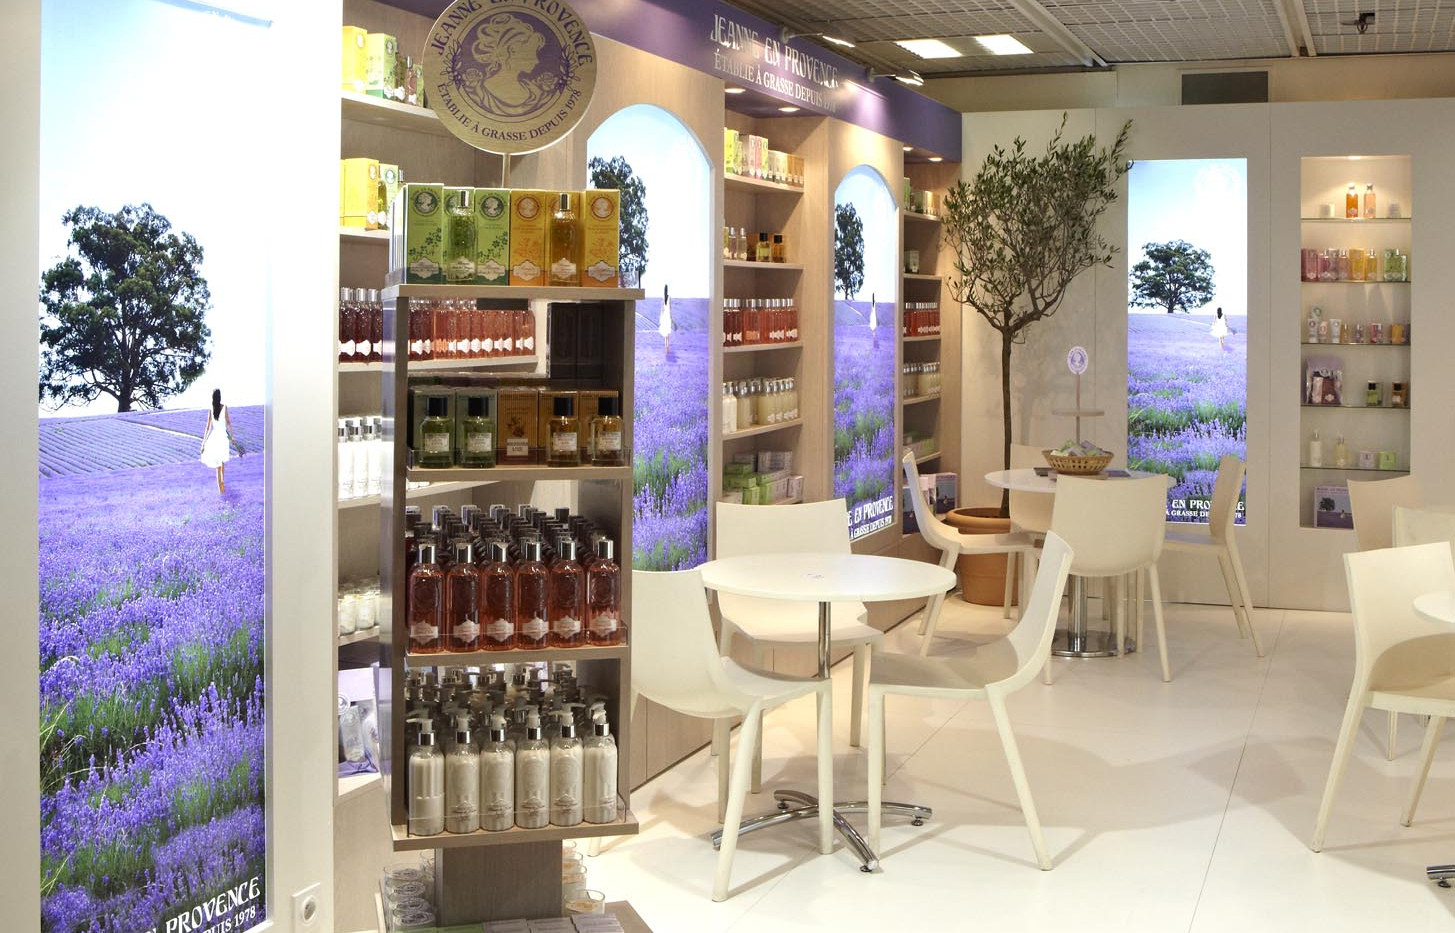 STAND ARTHES EN PROVENCE